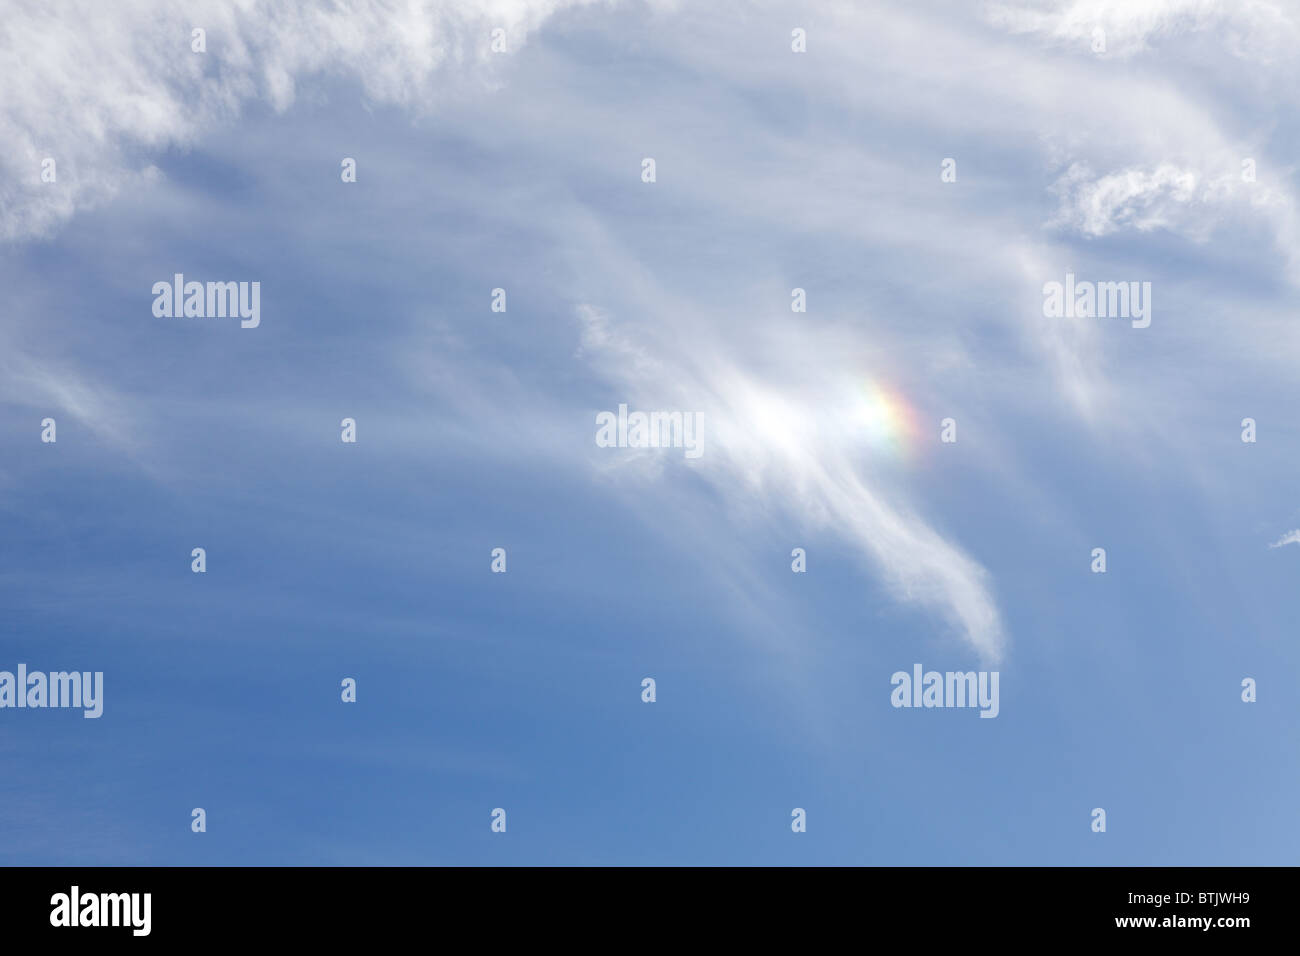 Viewed in July this year a Sun-dog or Parhelion one of five consecutive images taken in Acton Burnell in Shropshire. - Stock Image